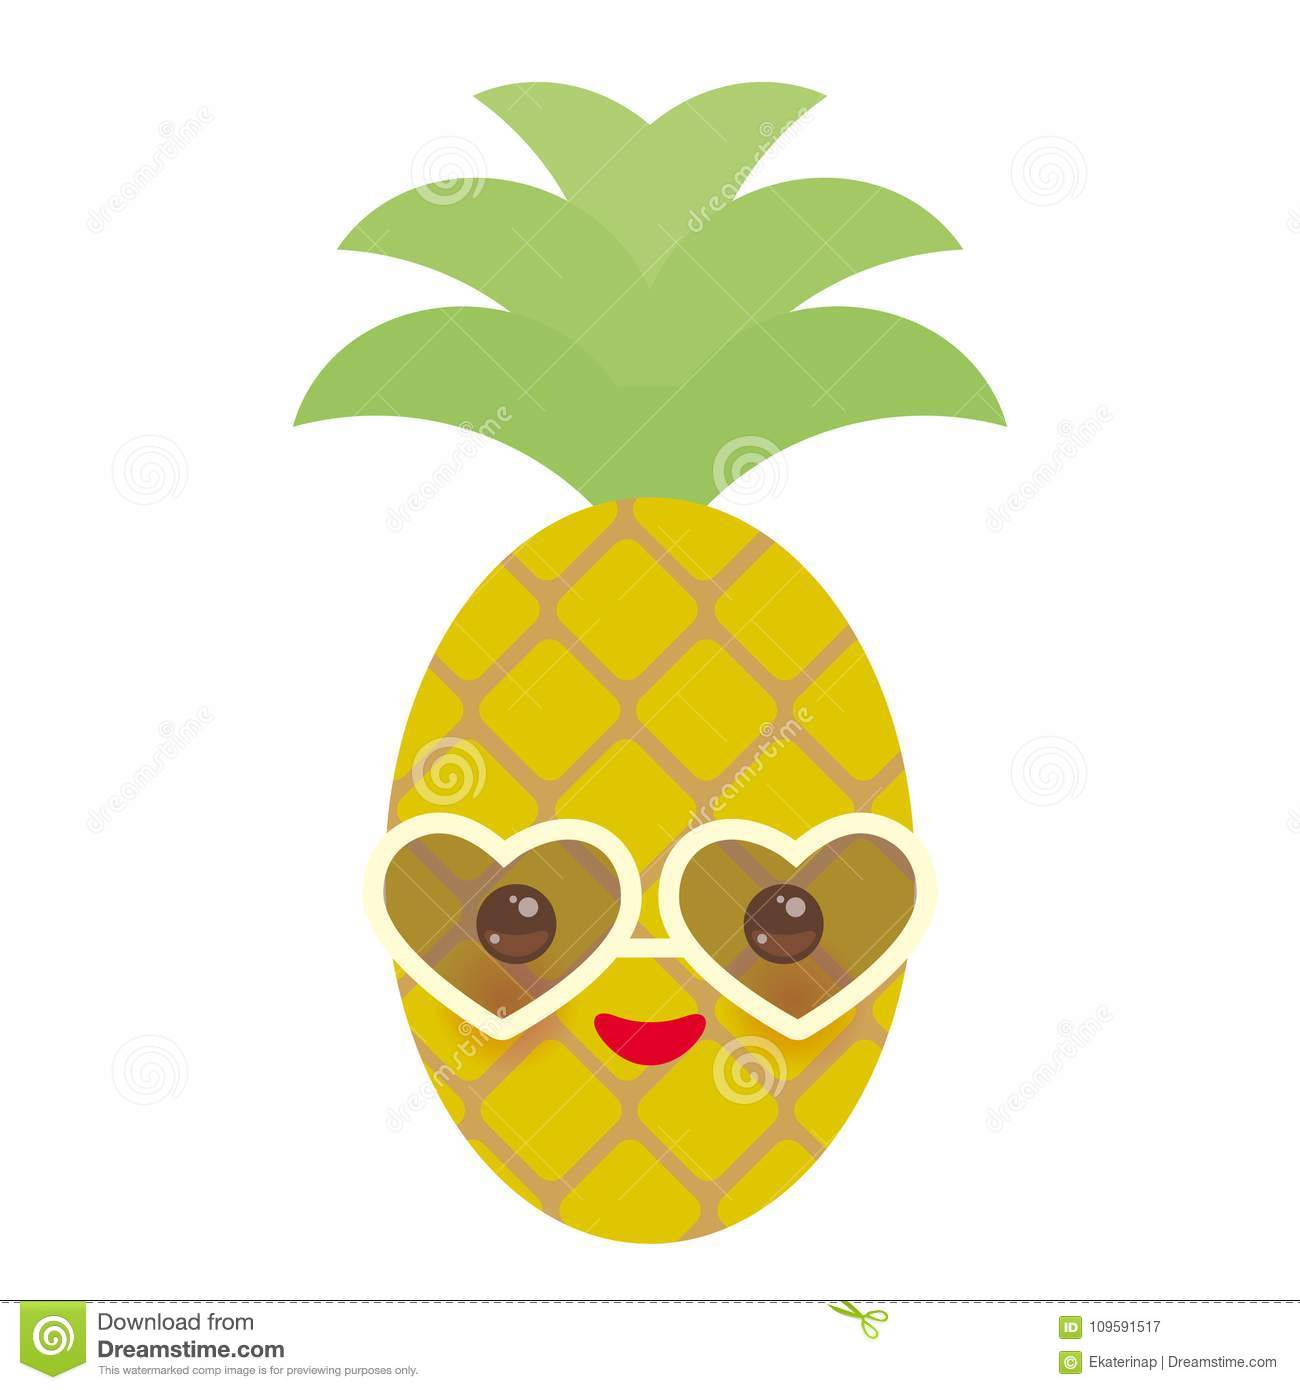 Pineapple With Sunglasses Tumblr Cute Funny Kawaii Exotic Fruit Pineapple With Sunglasses